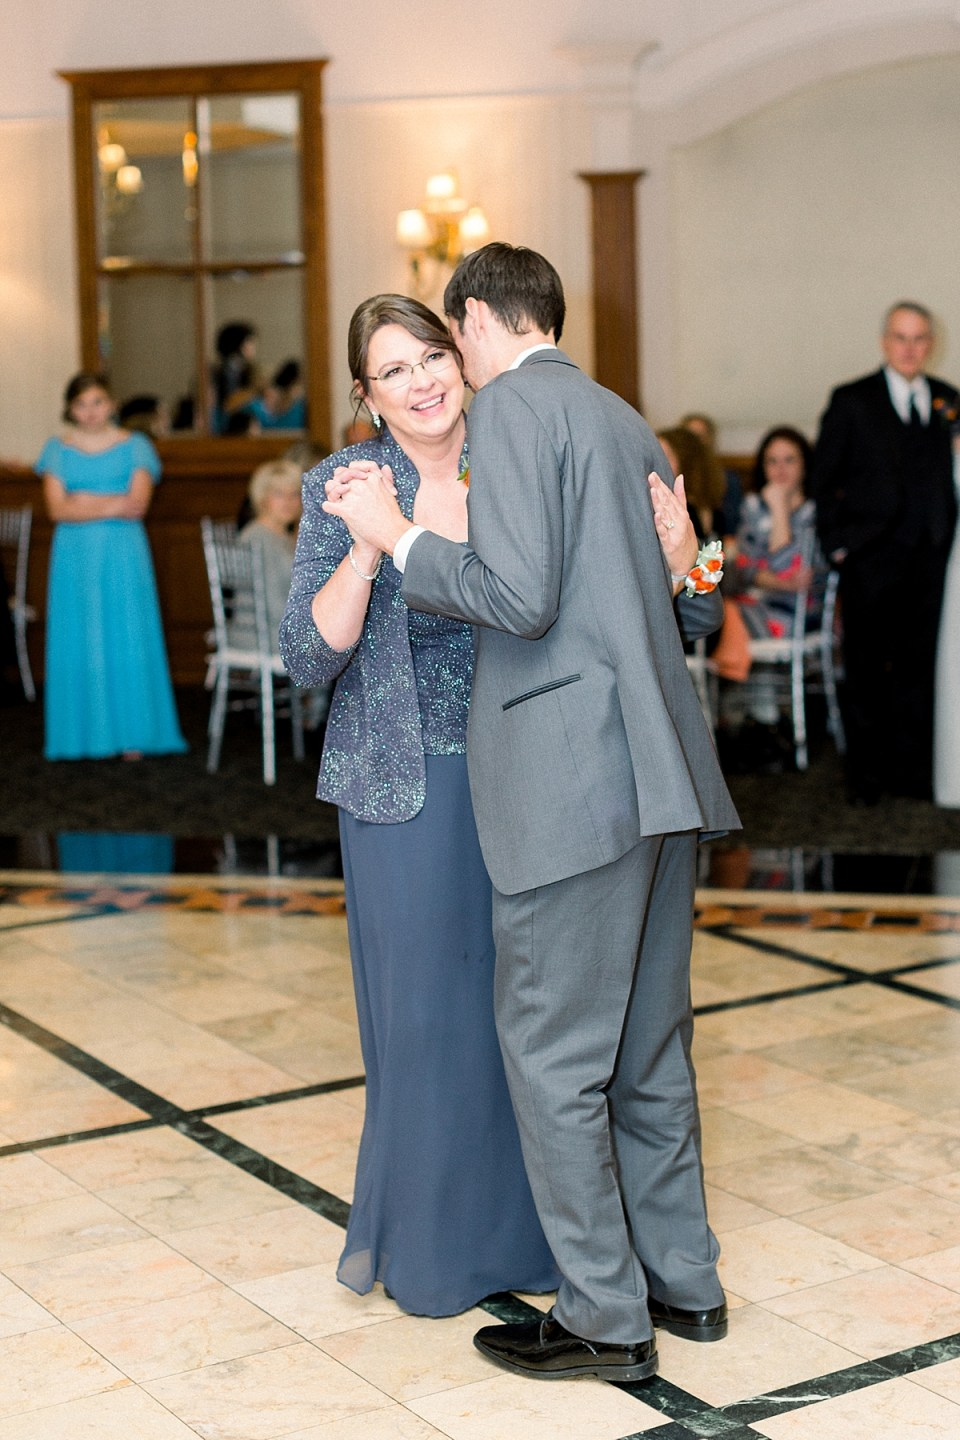 Arielle Peters Photography | Mother of the groom and the groom sharing a dance at fall wedding reception.